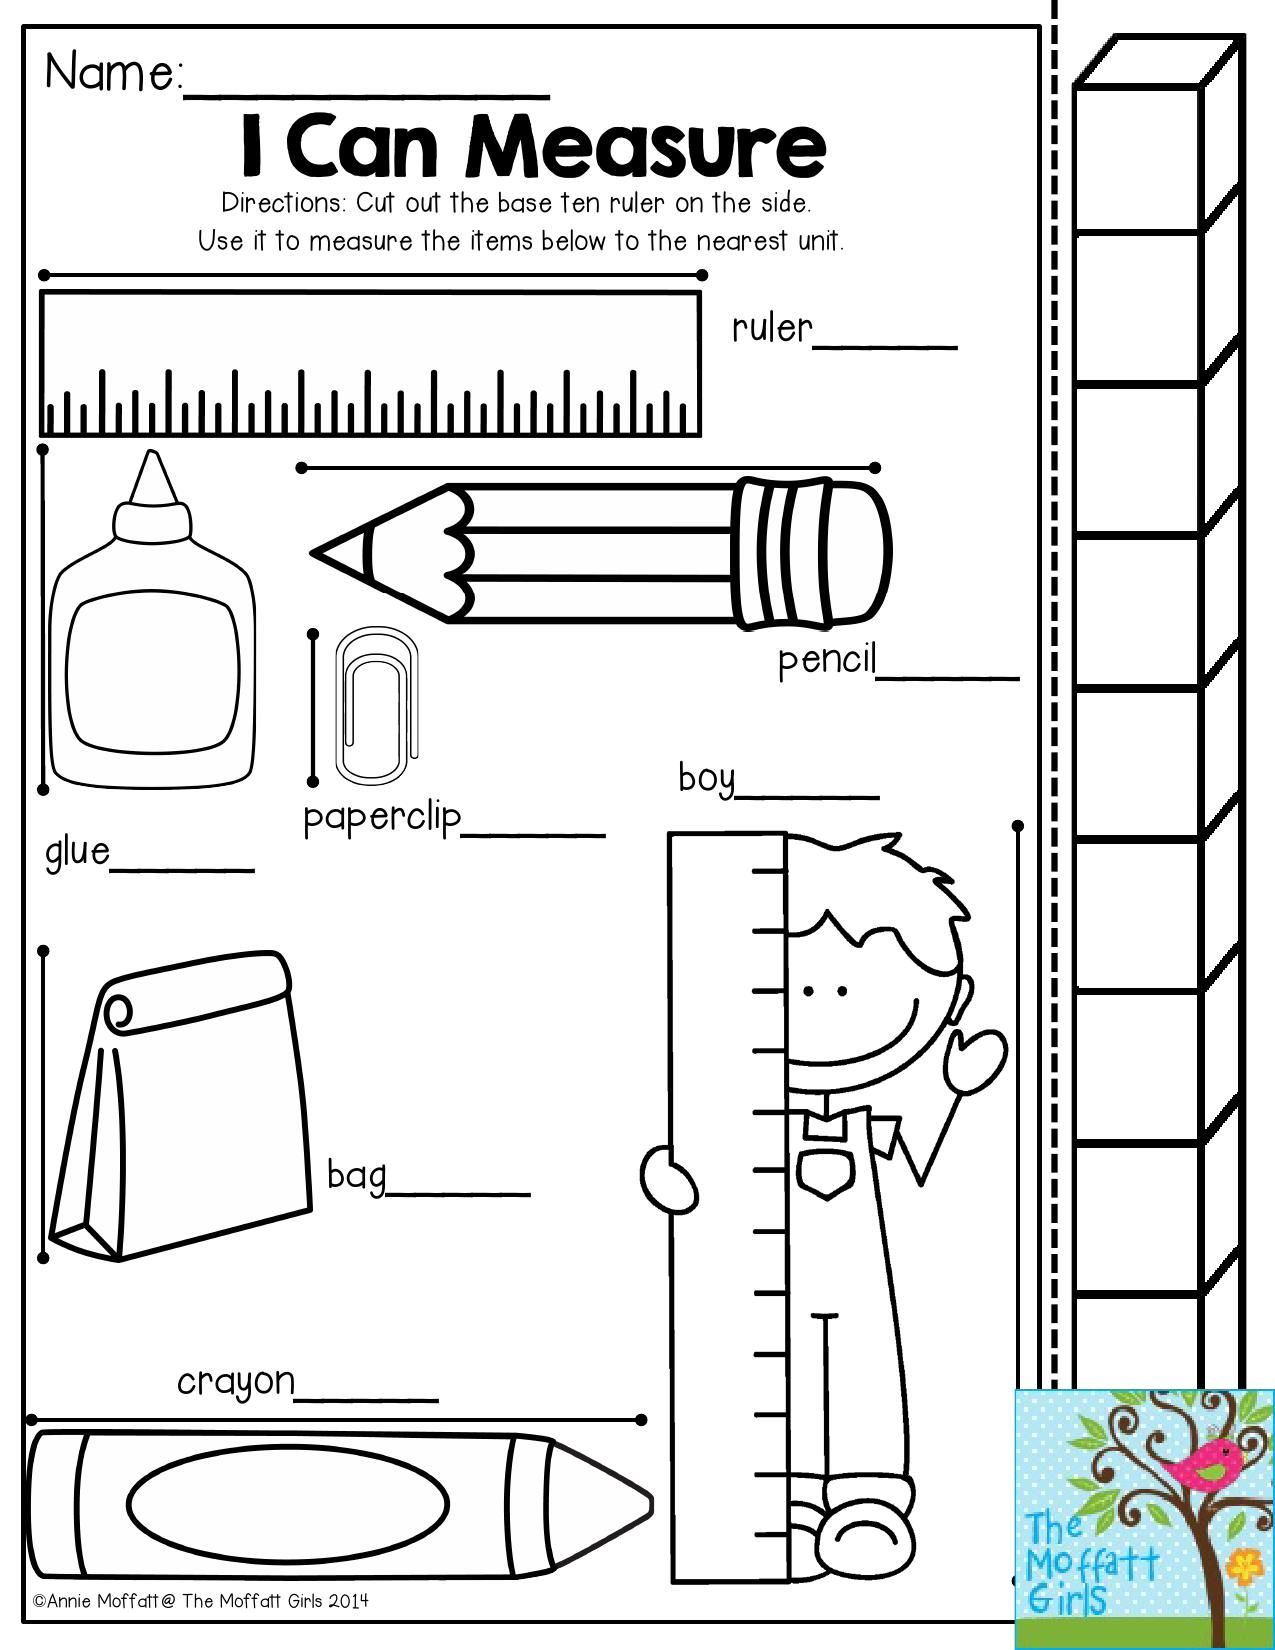 I Can Measure Have Students Use The Measuring Stick To See How Many Cubes Each Object Is The